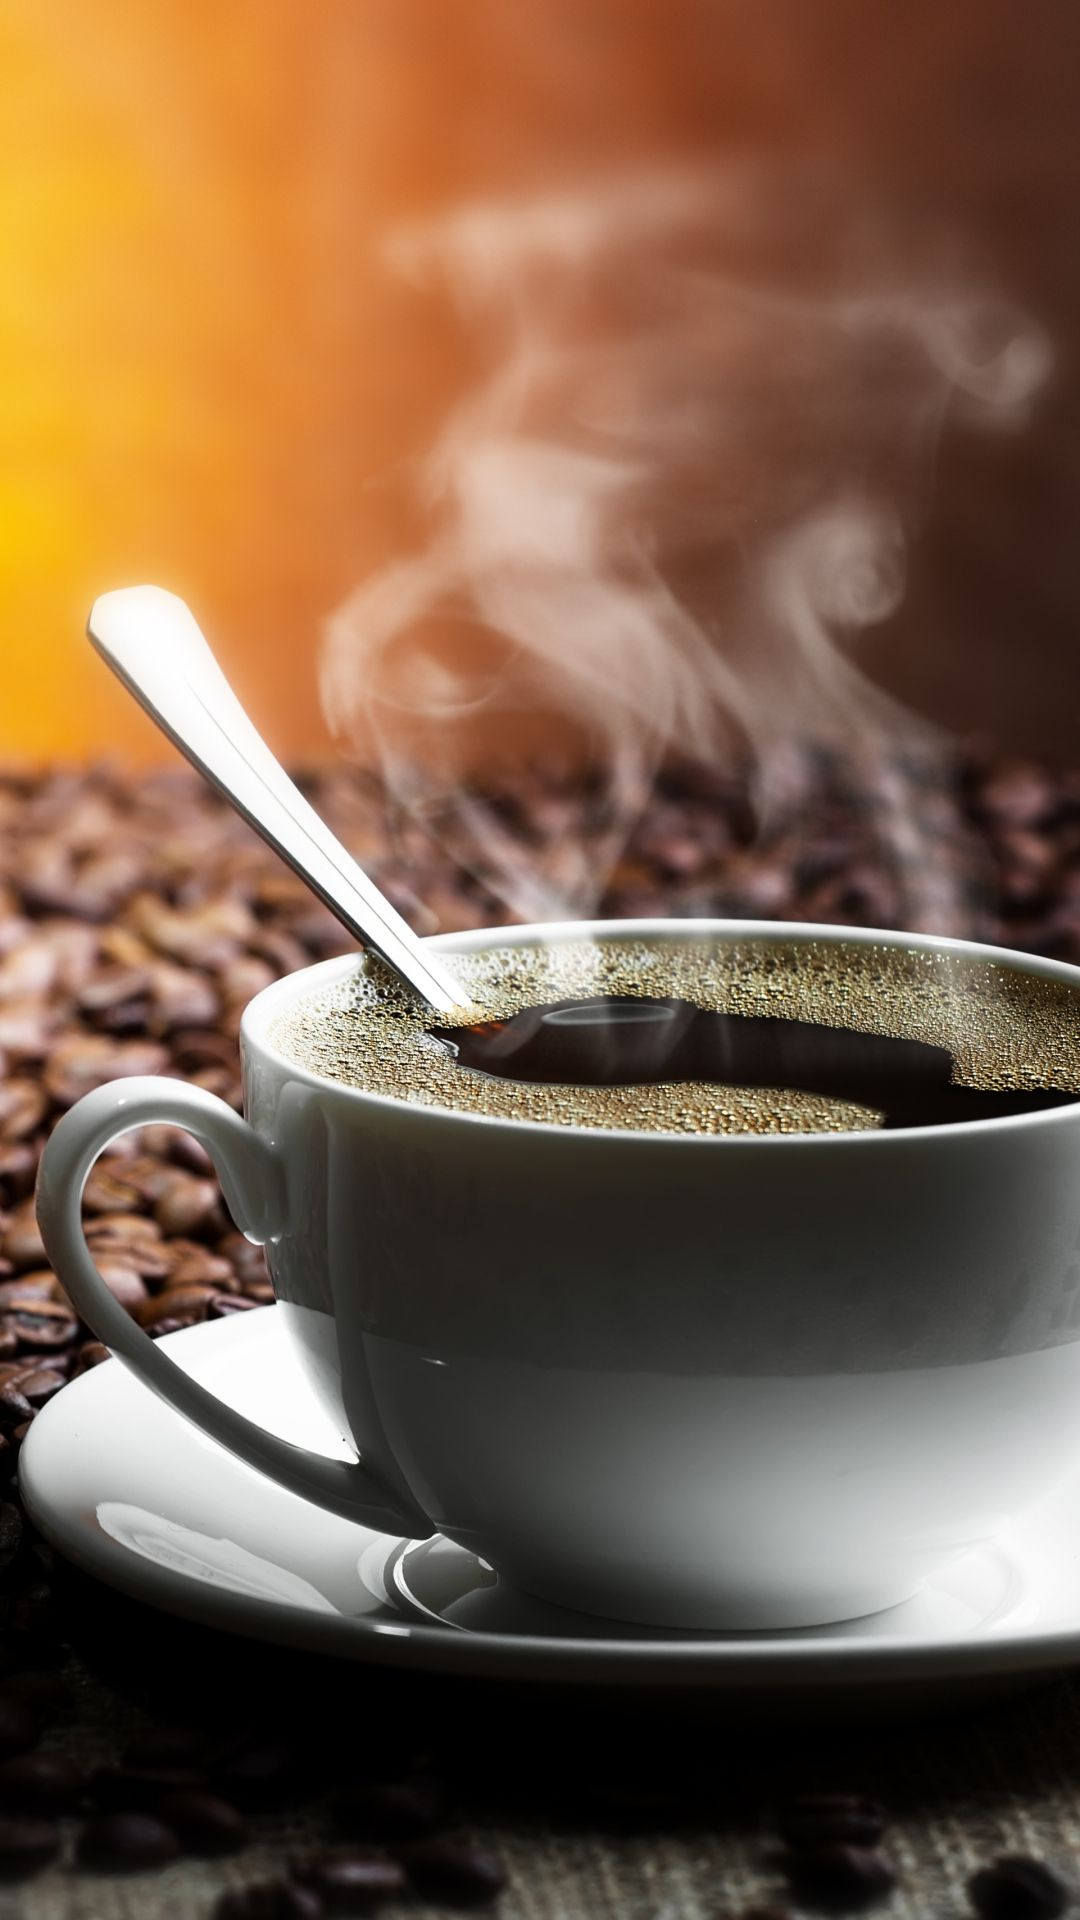 Background Coffee Hd : background, coffee, Http://www.vactualpapers.com/gallery/a-cup-of-coffee-mobile-hd-wallpaper, Coffee, Wallpaper,, Morning, Cups,, Images